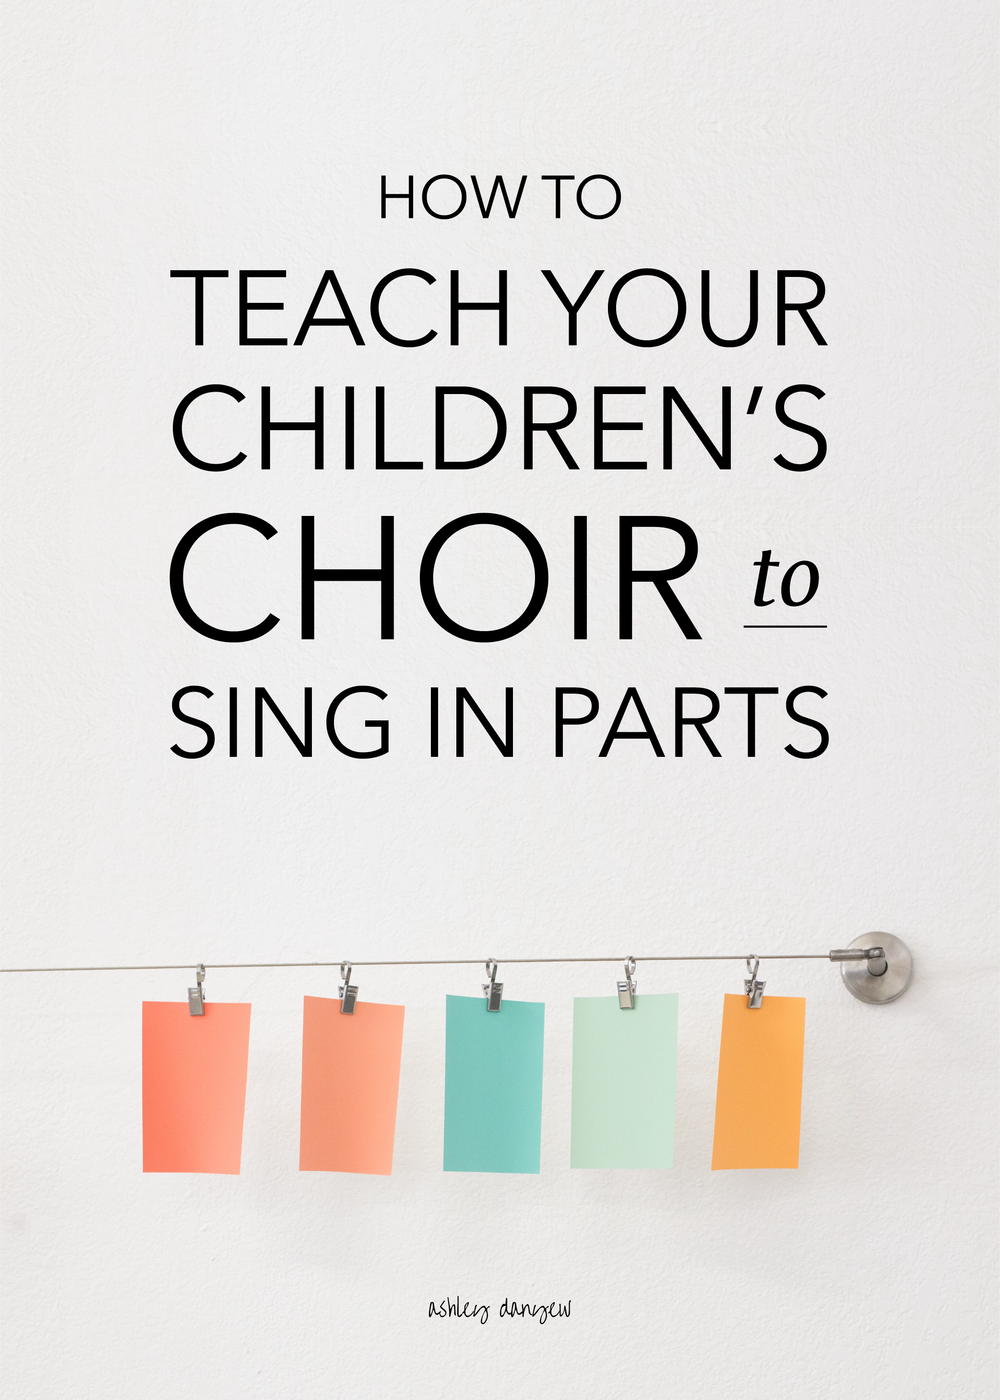 How to Teach Your Children's Choir to Sing in Parts-09.png